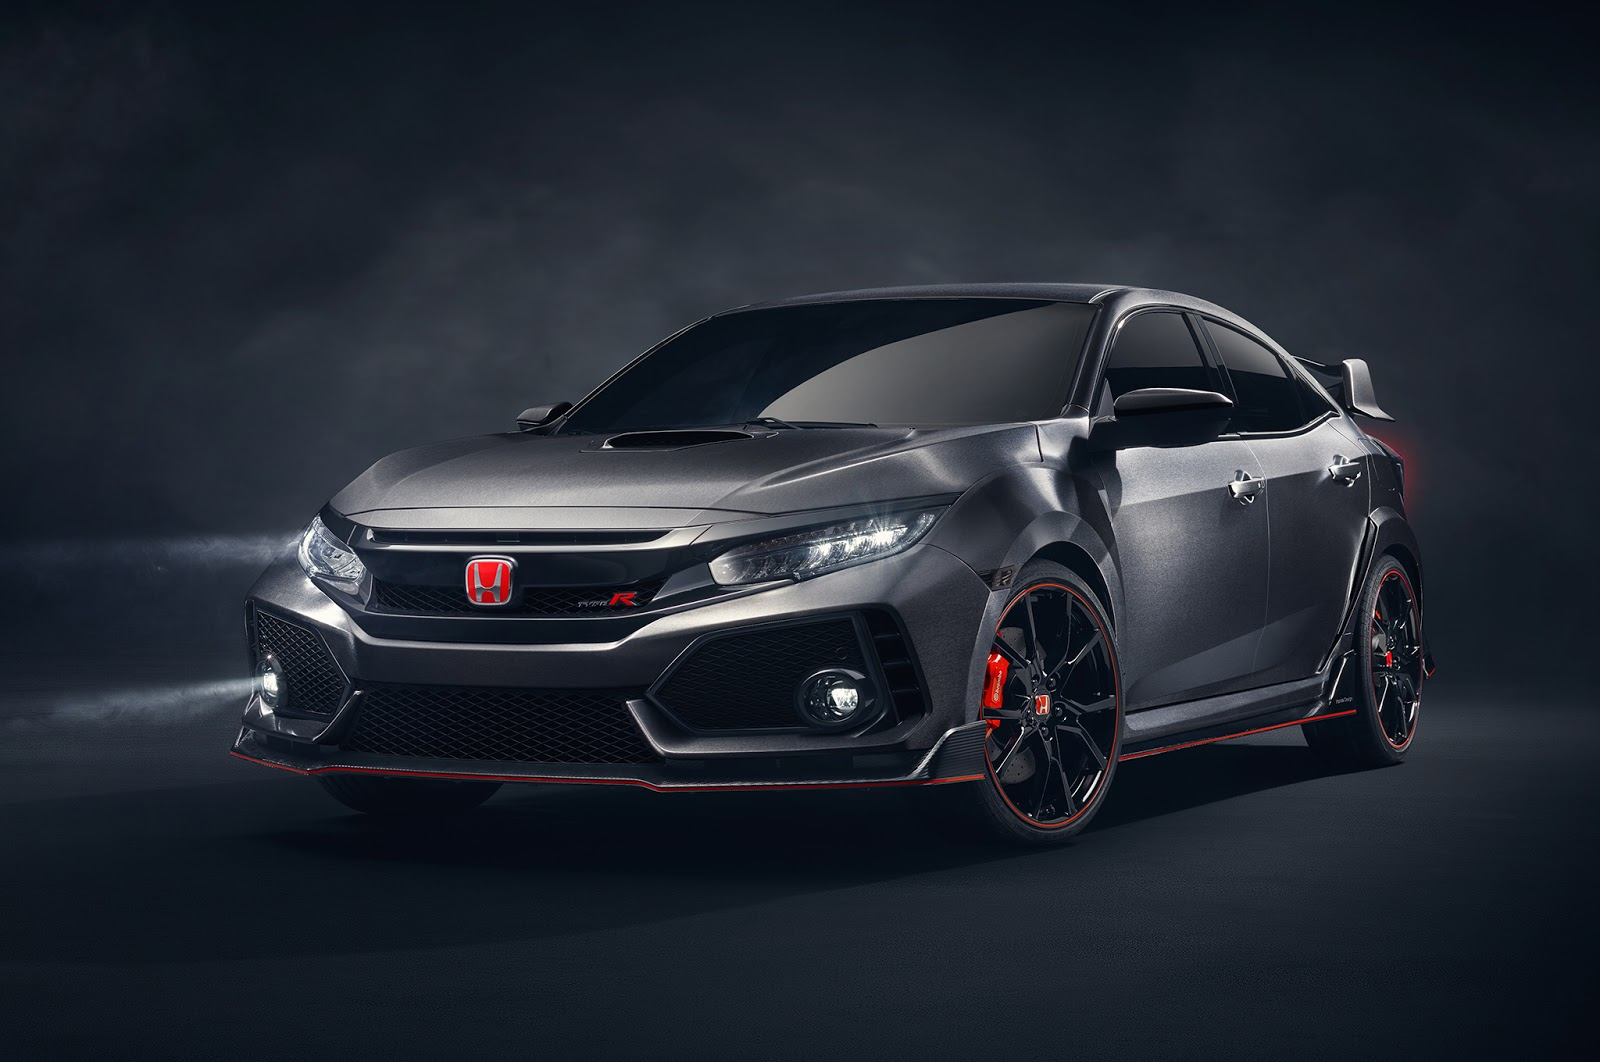 2017 honda civic type r here 39 s how it differs from the prototype news. Black Bedroom Furniture Sets. Home Design Ideas